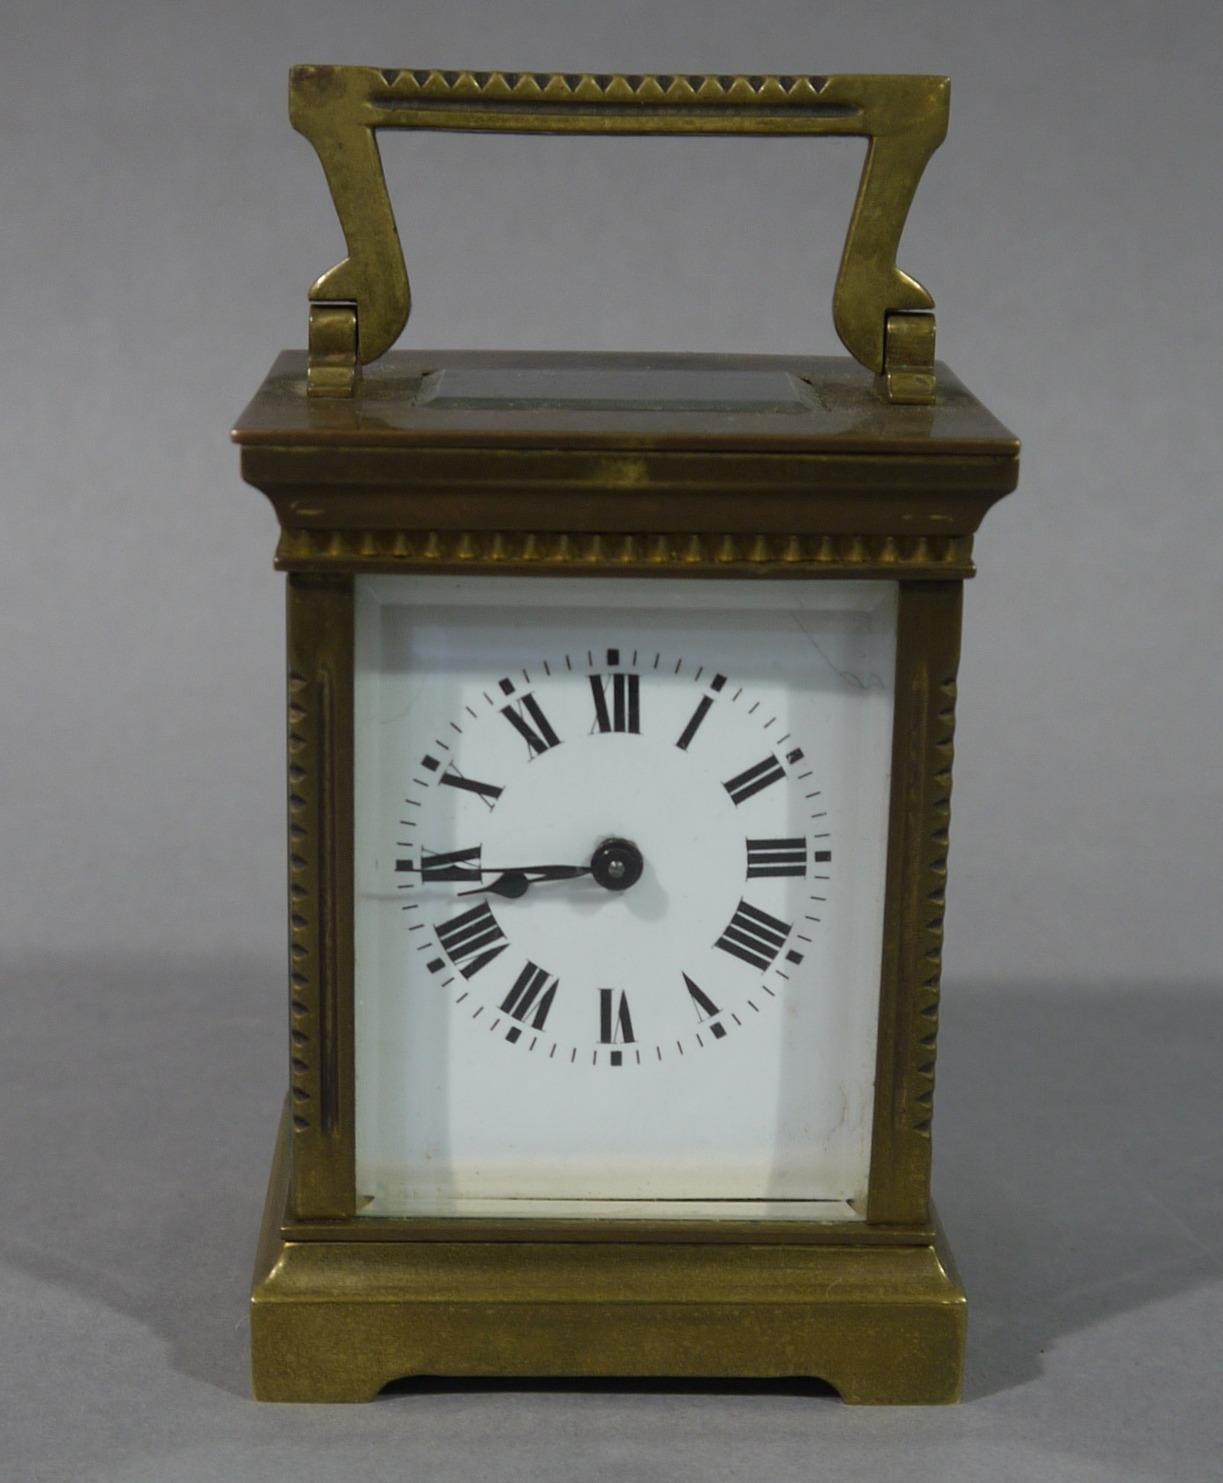 LOT:6 | An early 20th century brass carriage clock with